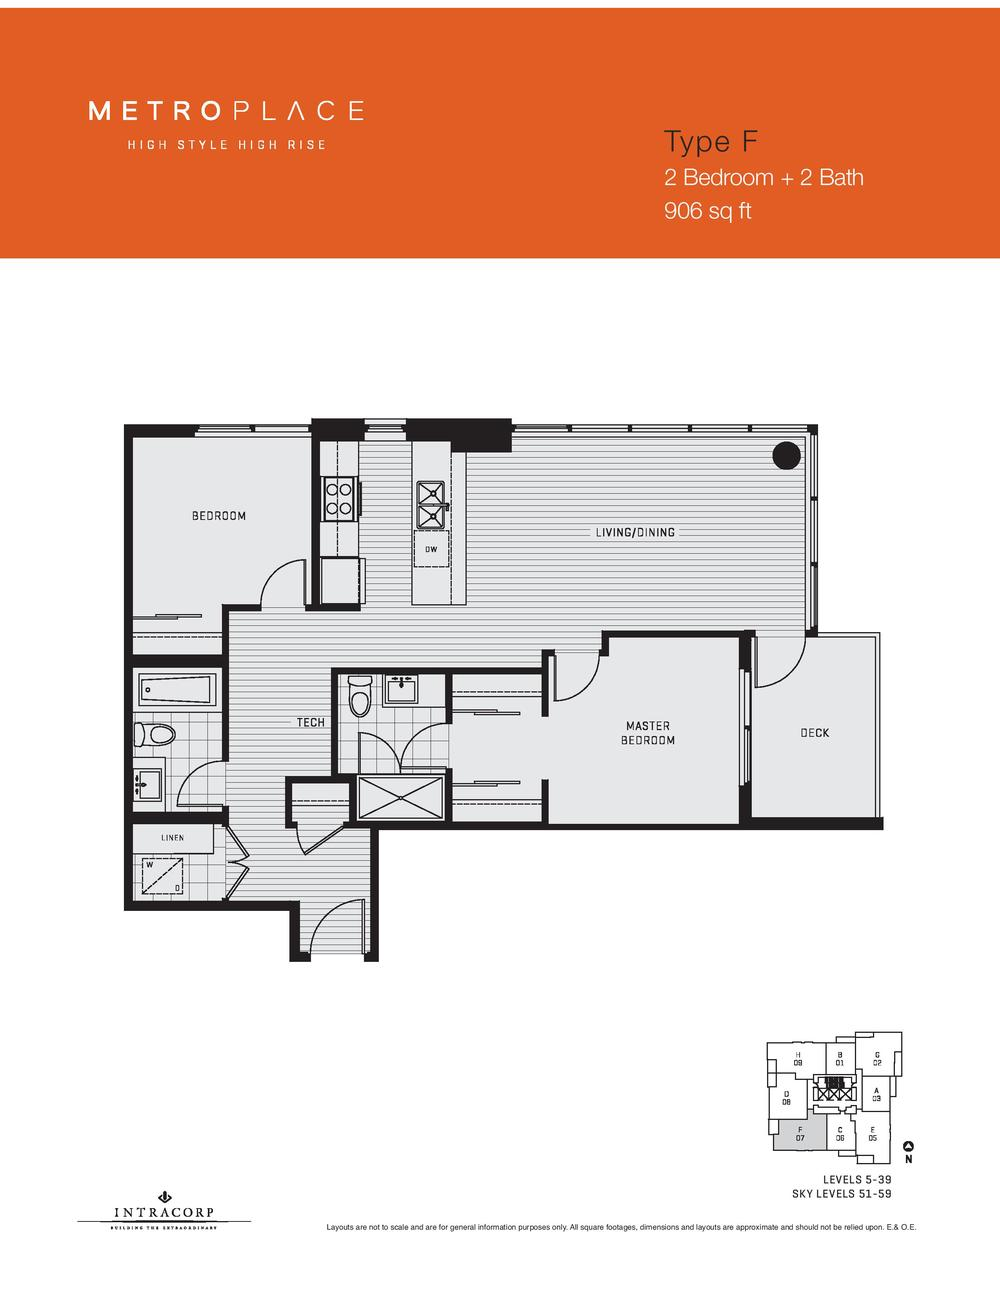 Metroplace floor plan-page-003.jpg